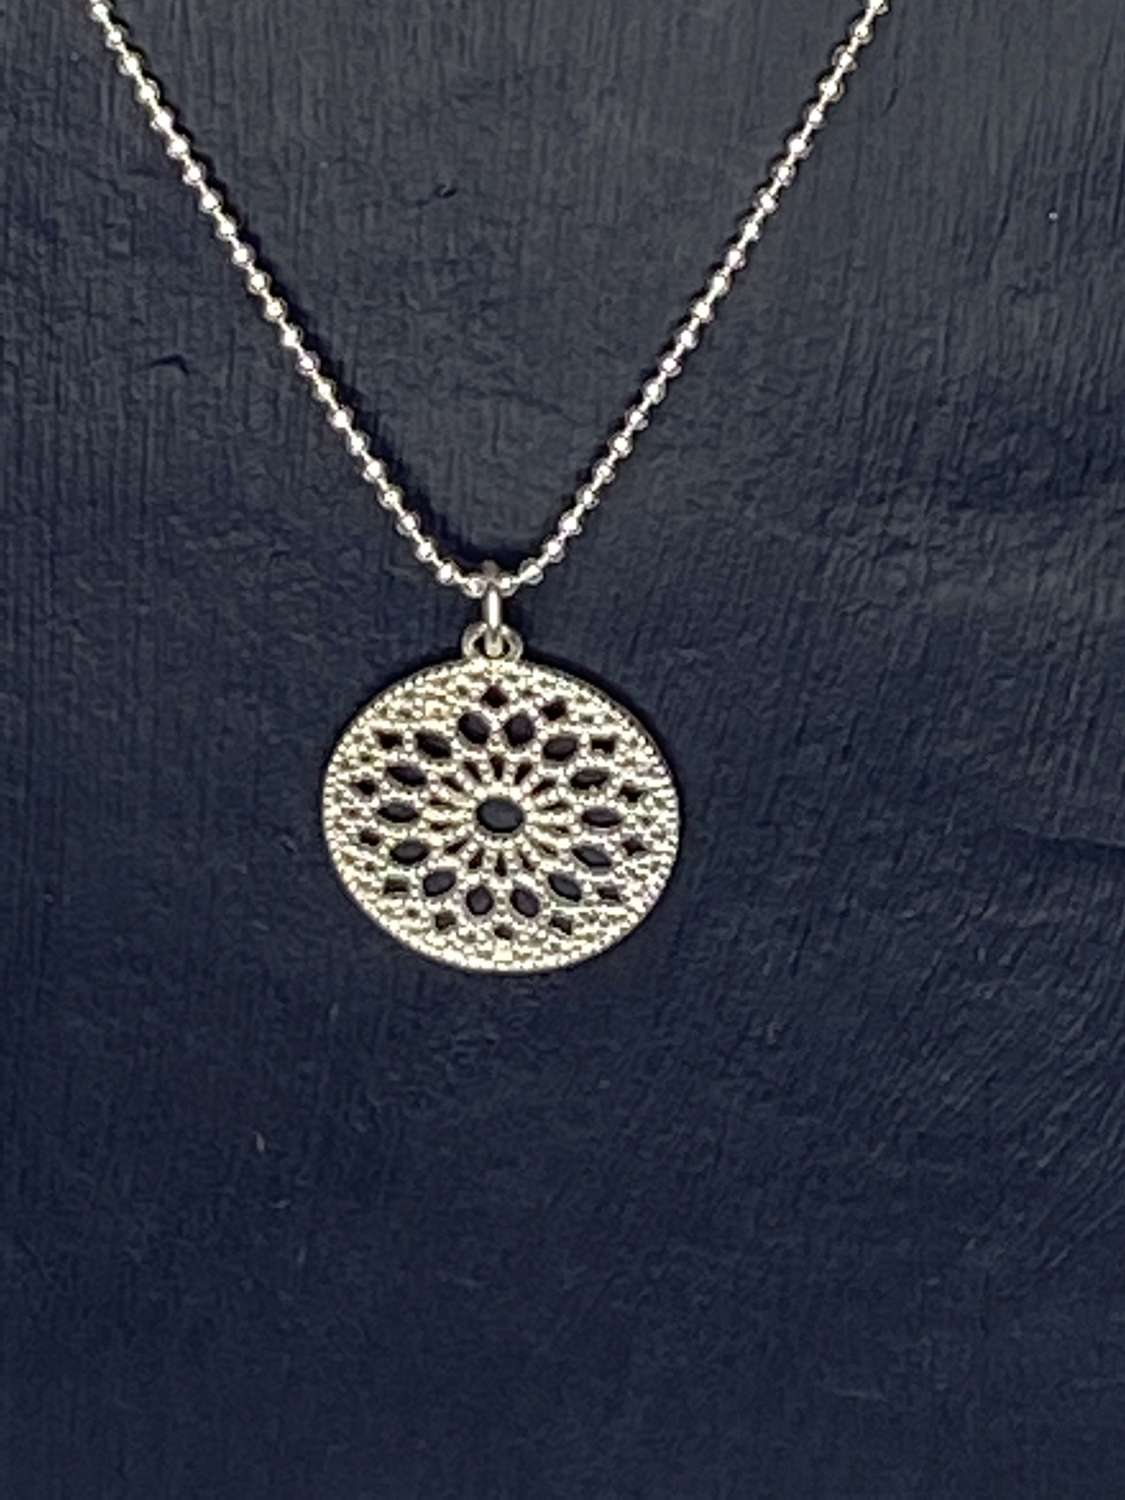 Stirling silver necklace with pendant